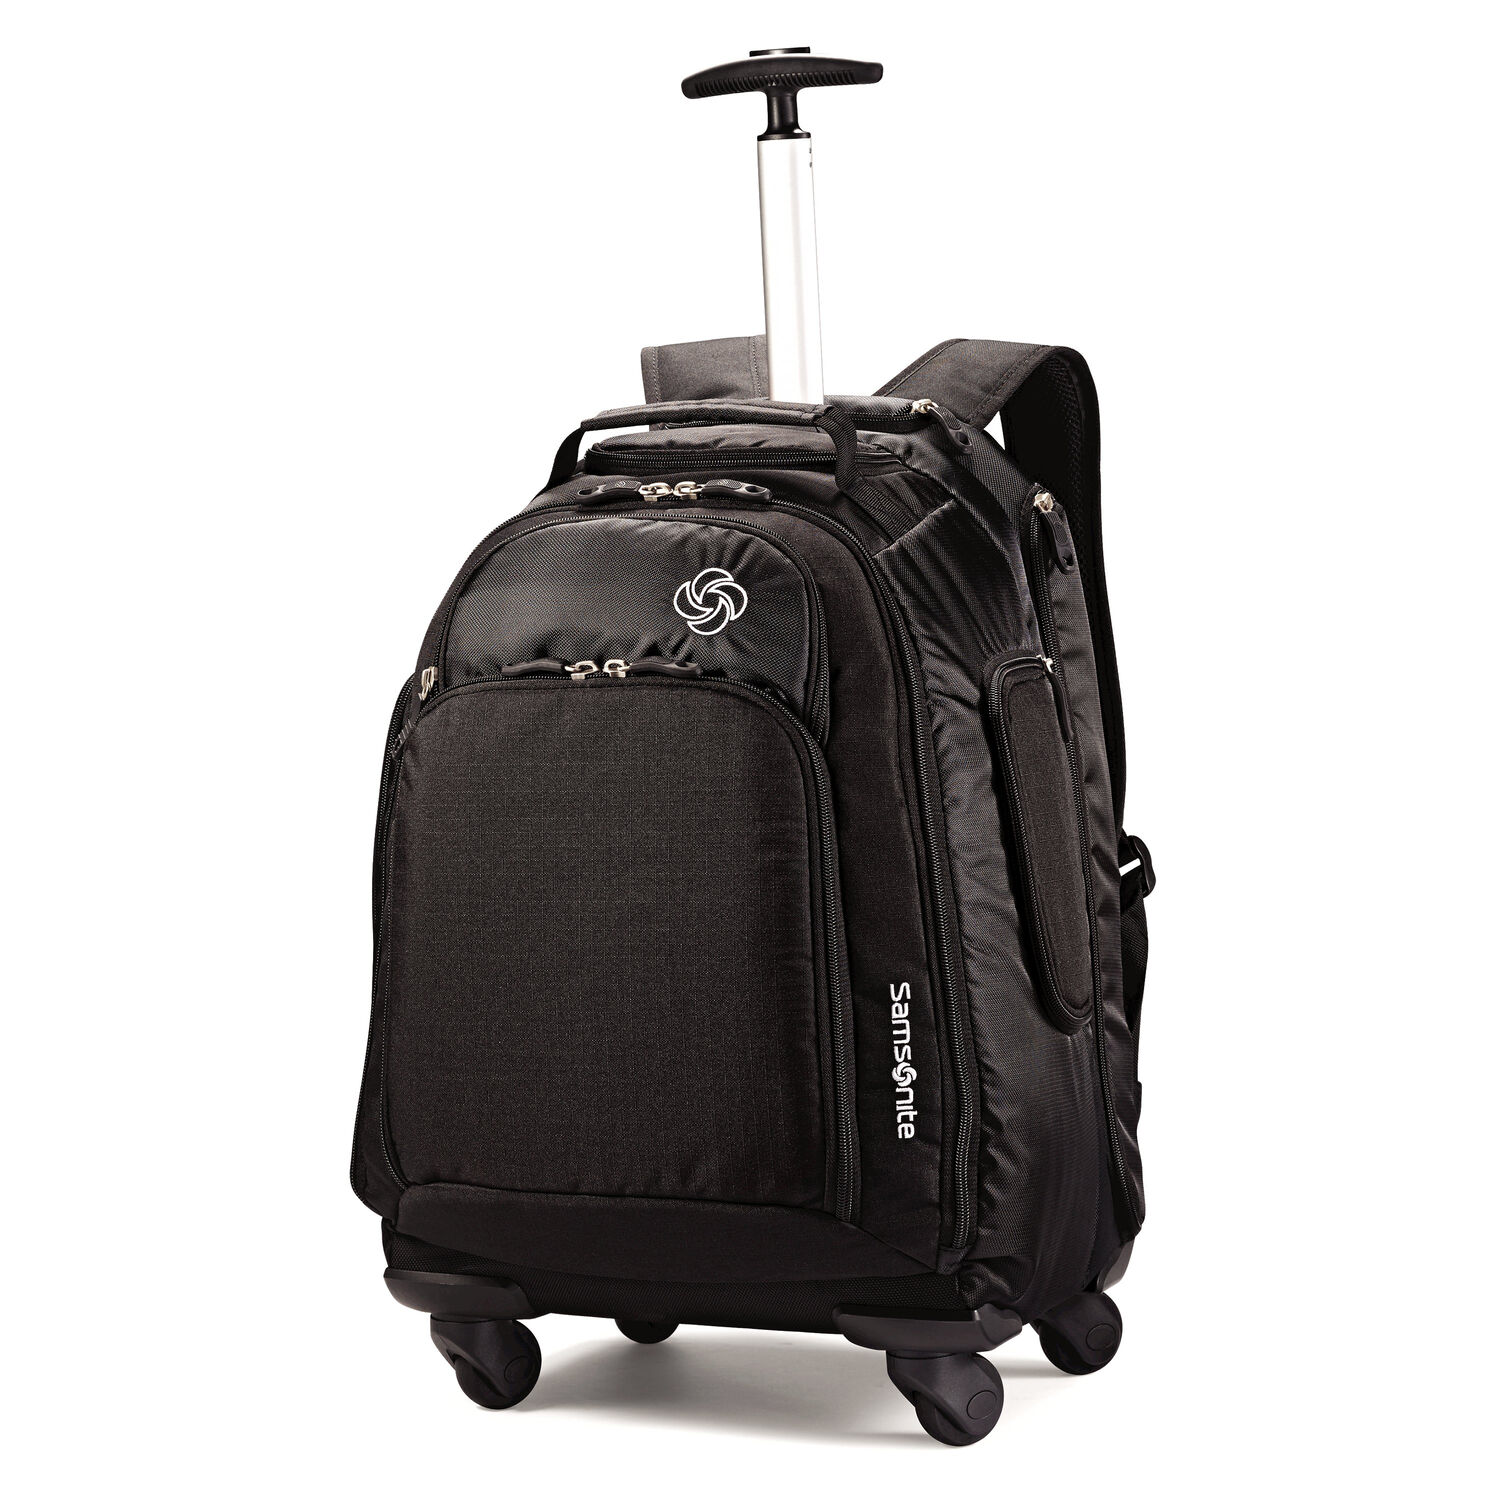 Samsonite Mvs Spinner Backpack